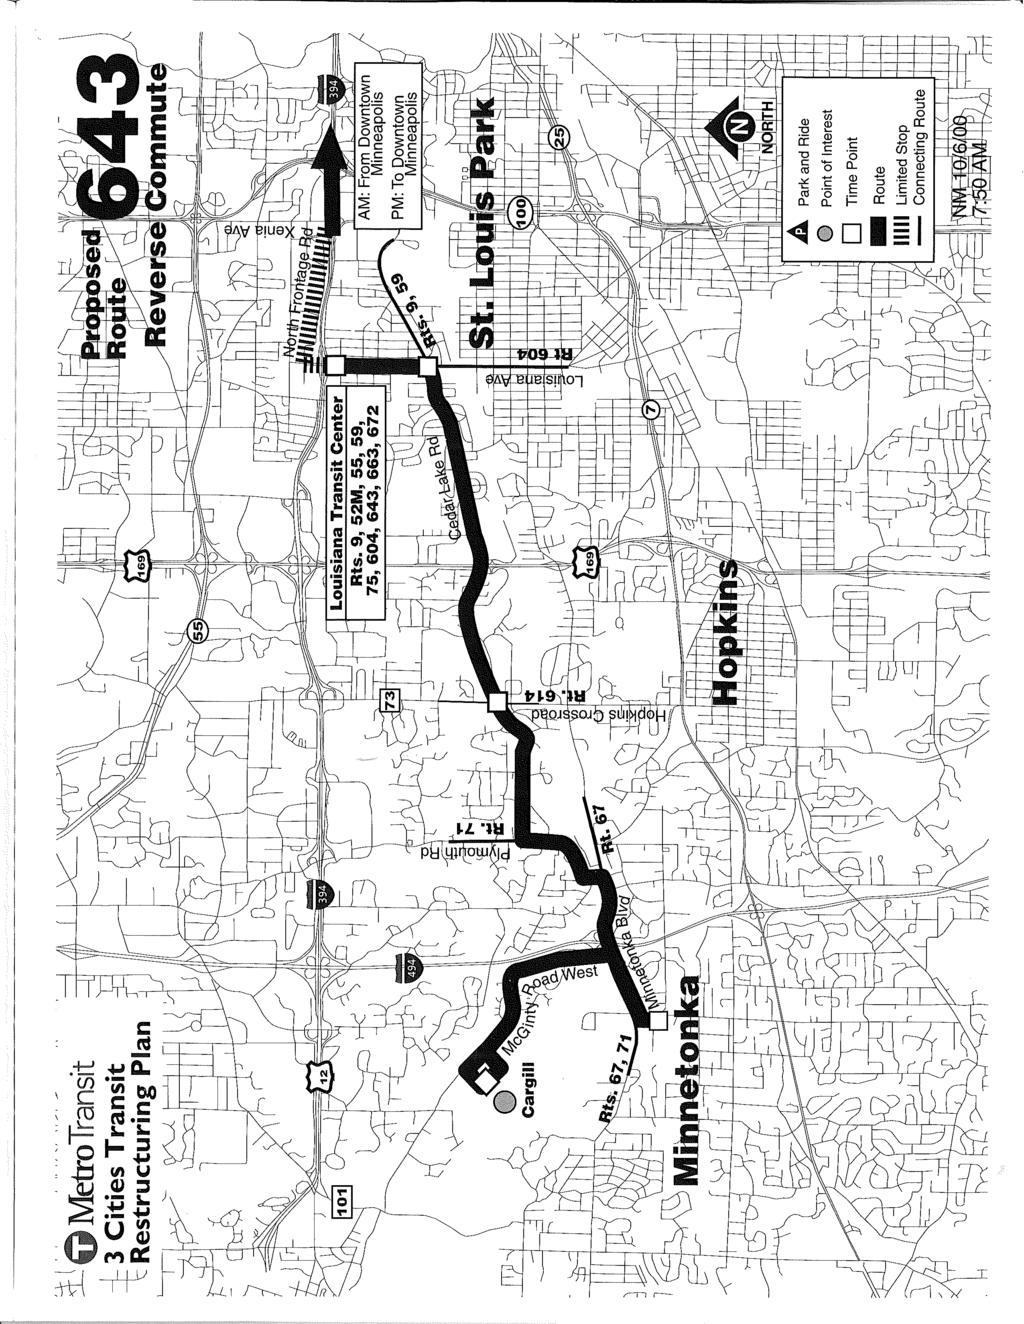 ~ jj' MetroTransit --i- 3 Cities Transit t Restructuring Plan ~ '3 J Park